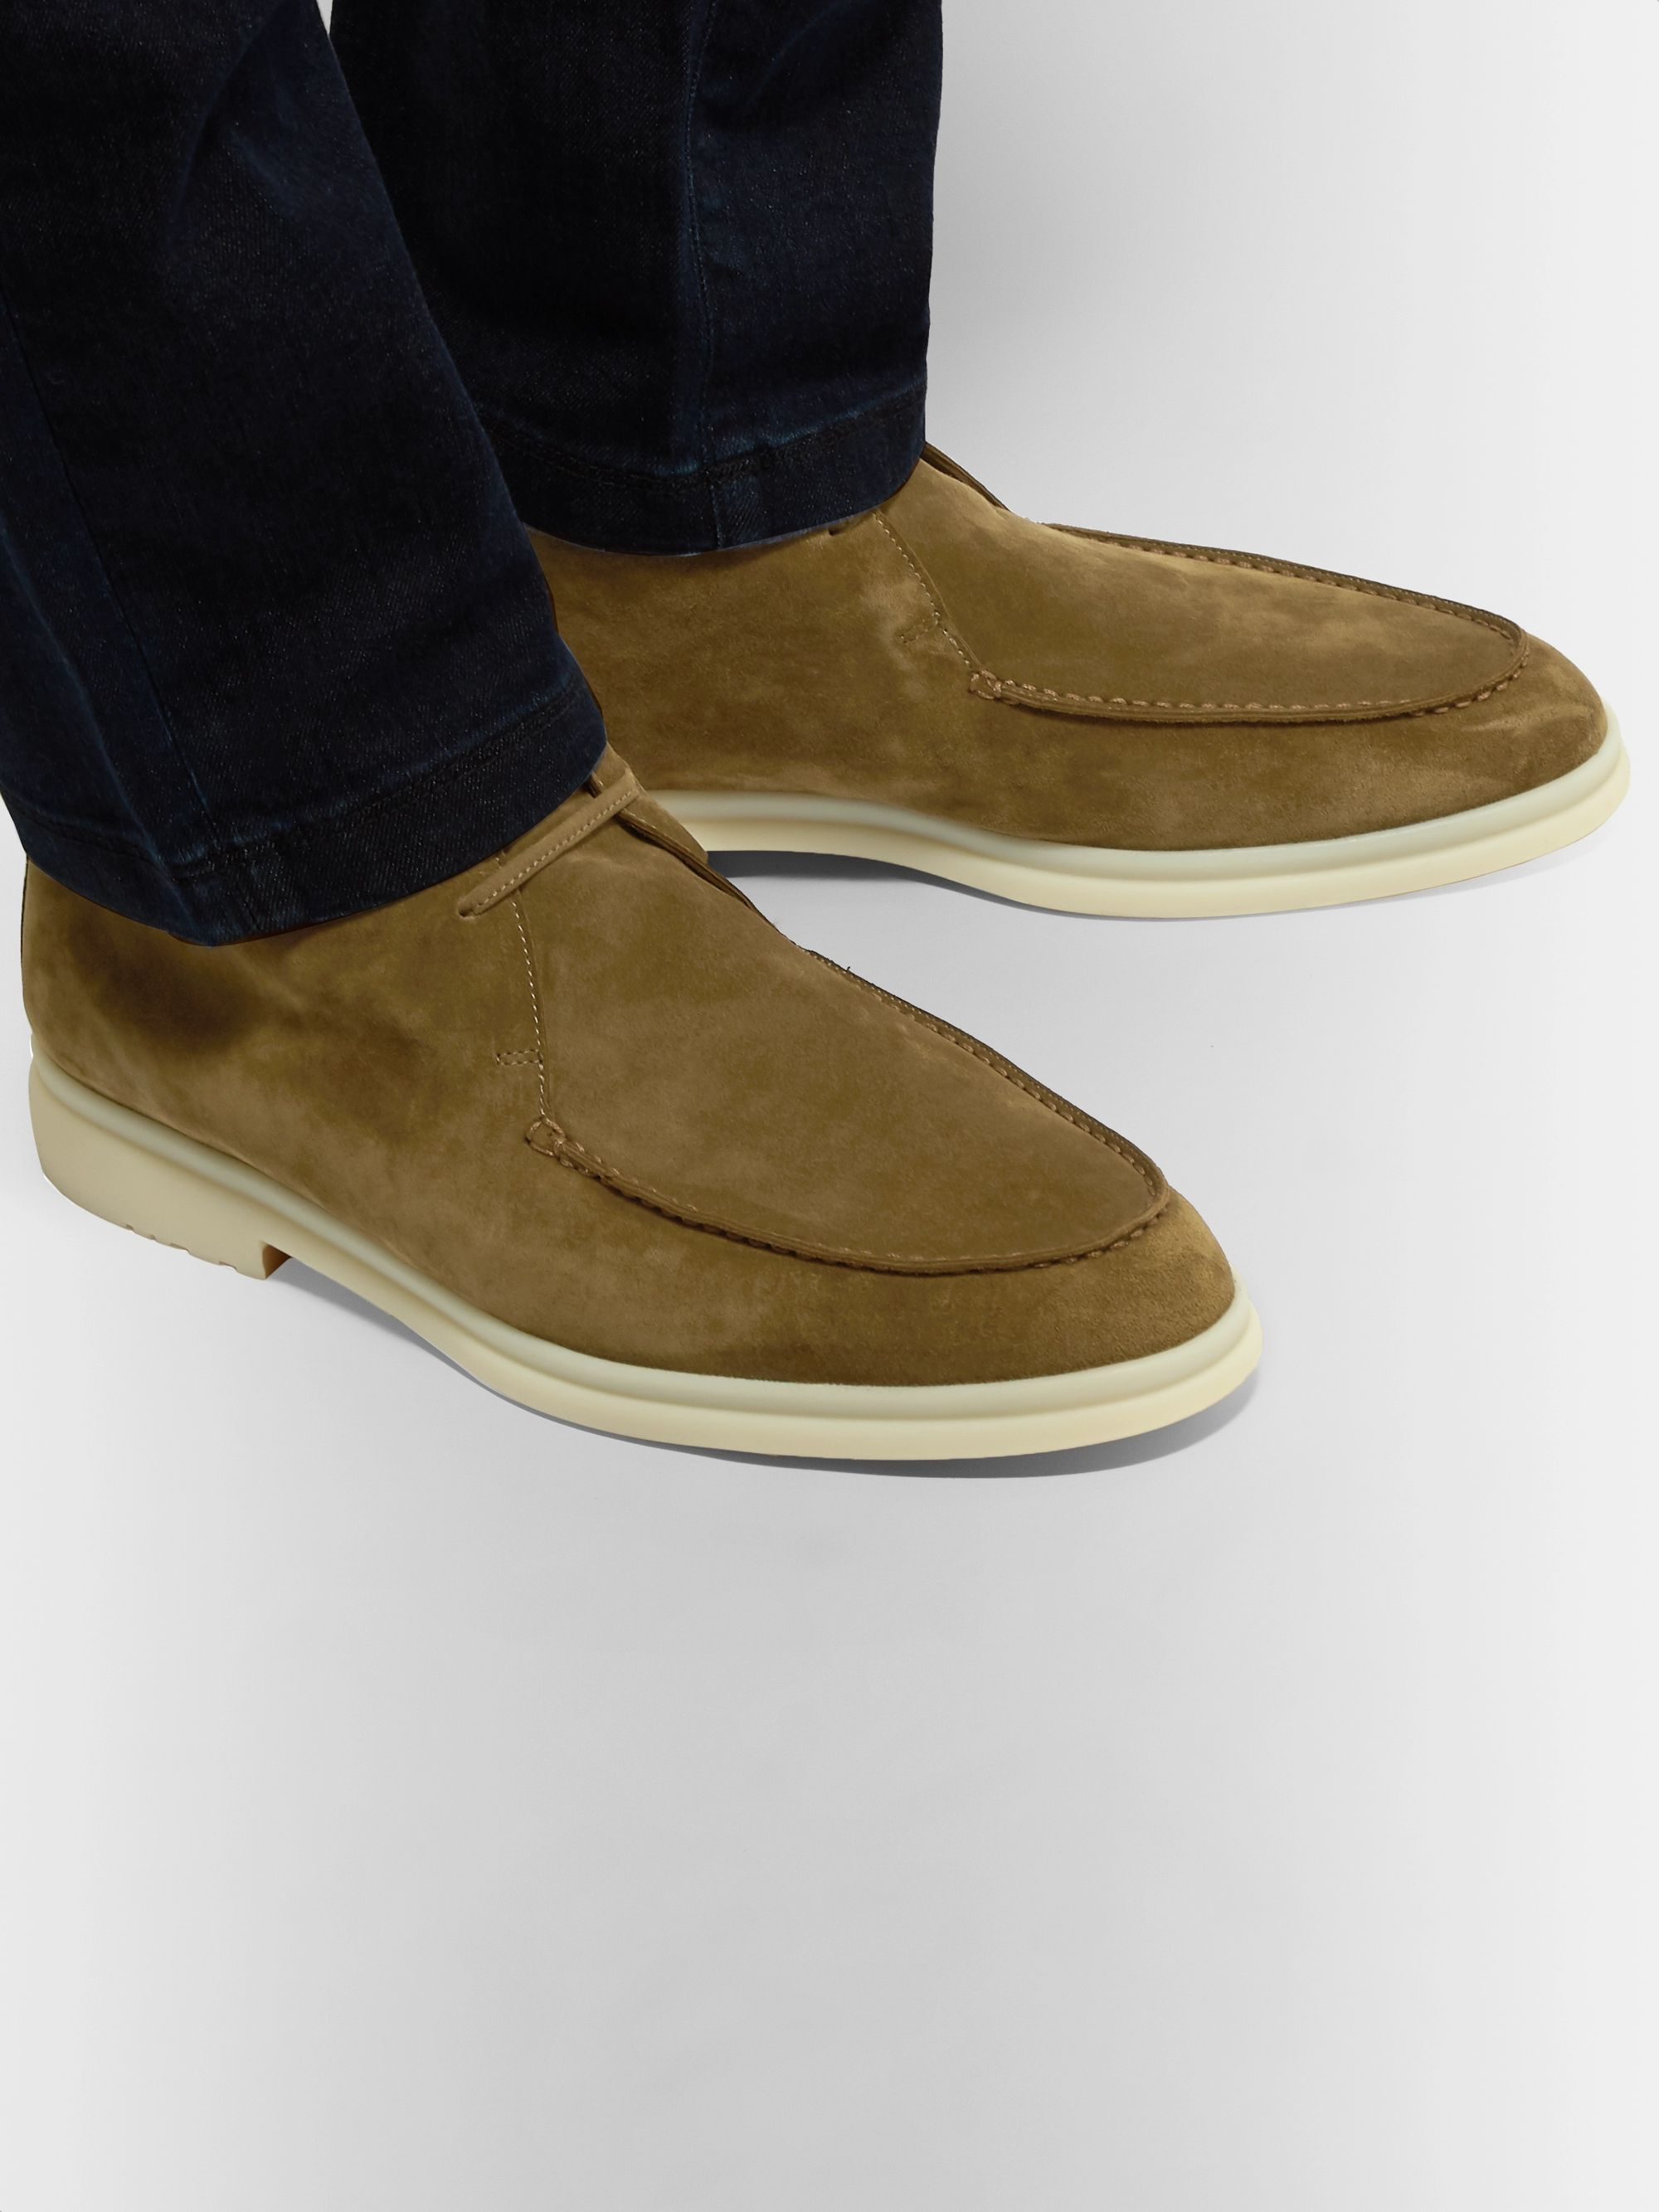 Loro Piana Walk and Walk Cashmere-Lined Suede Boots